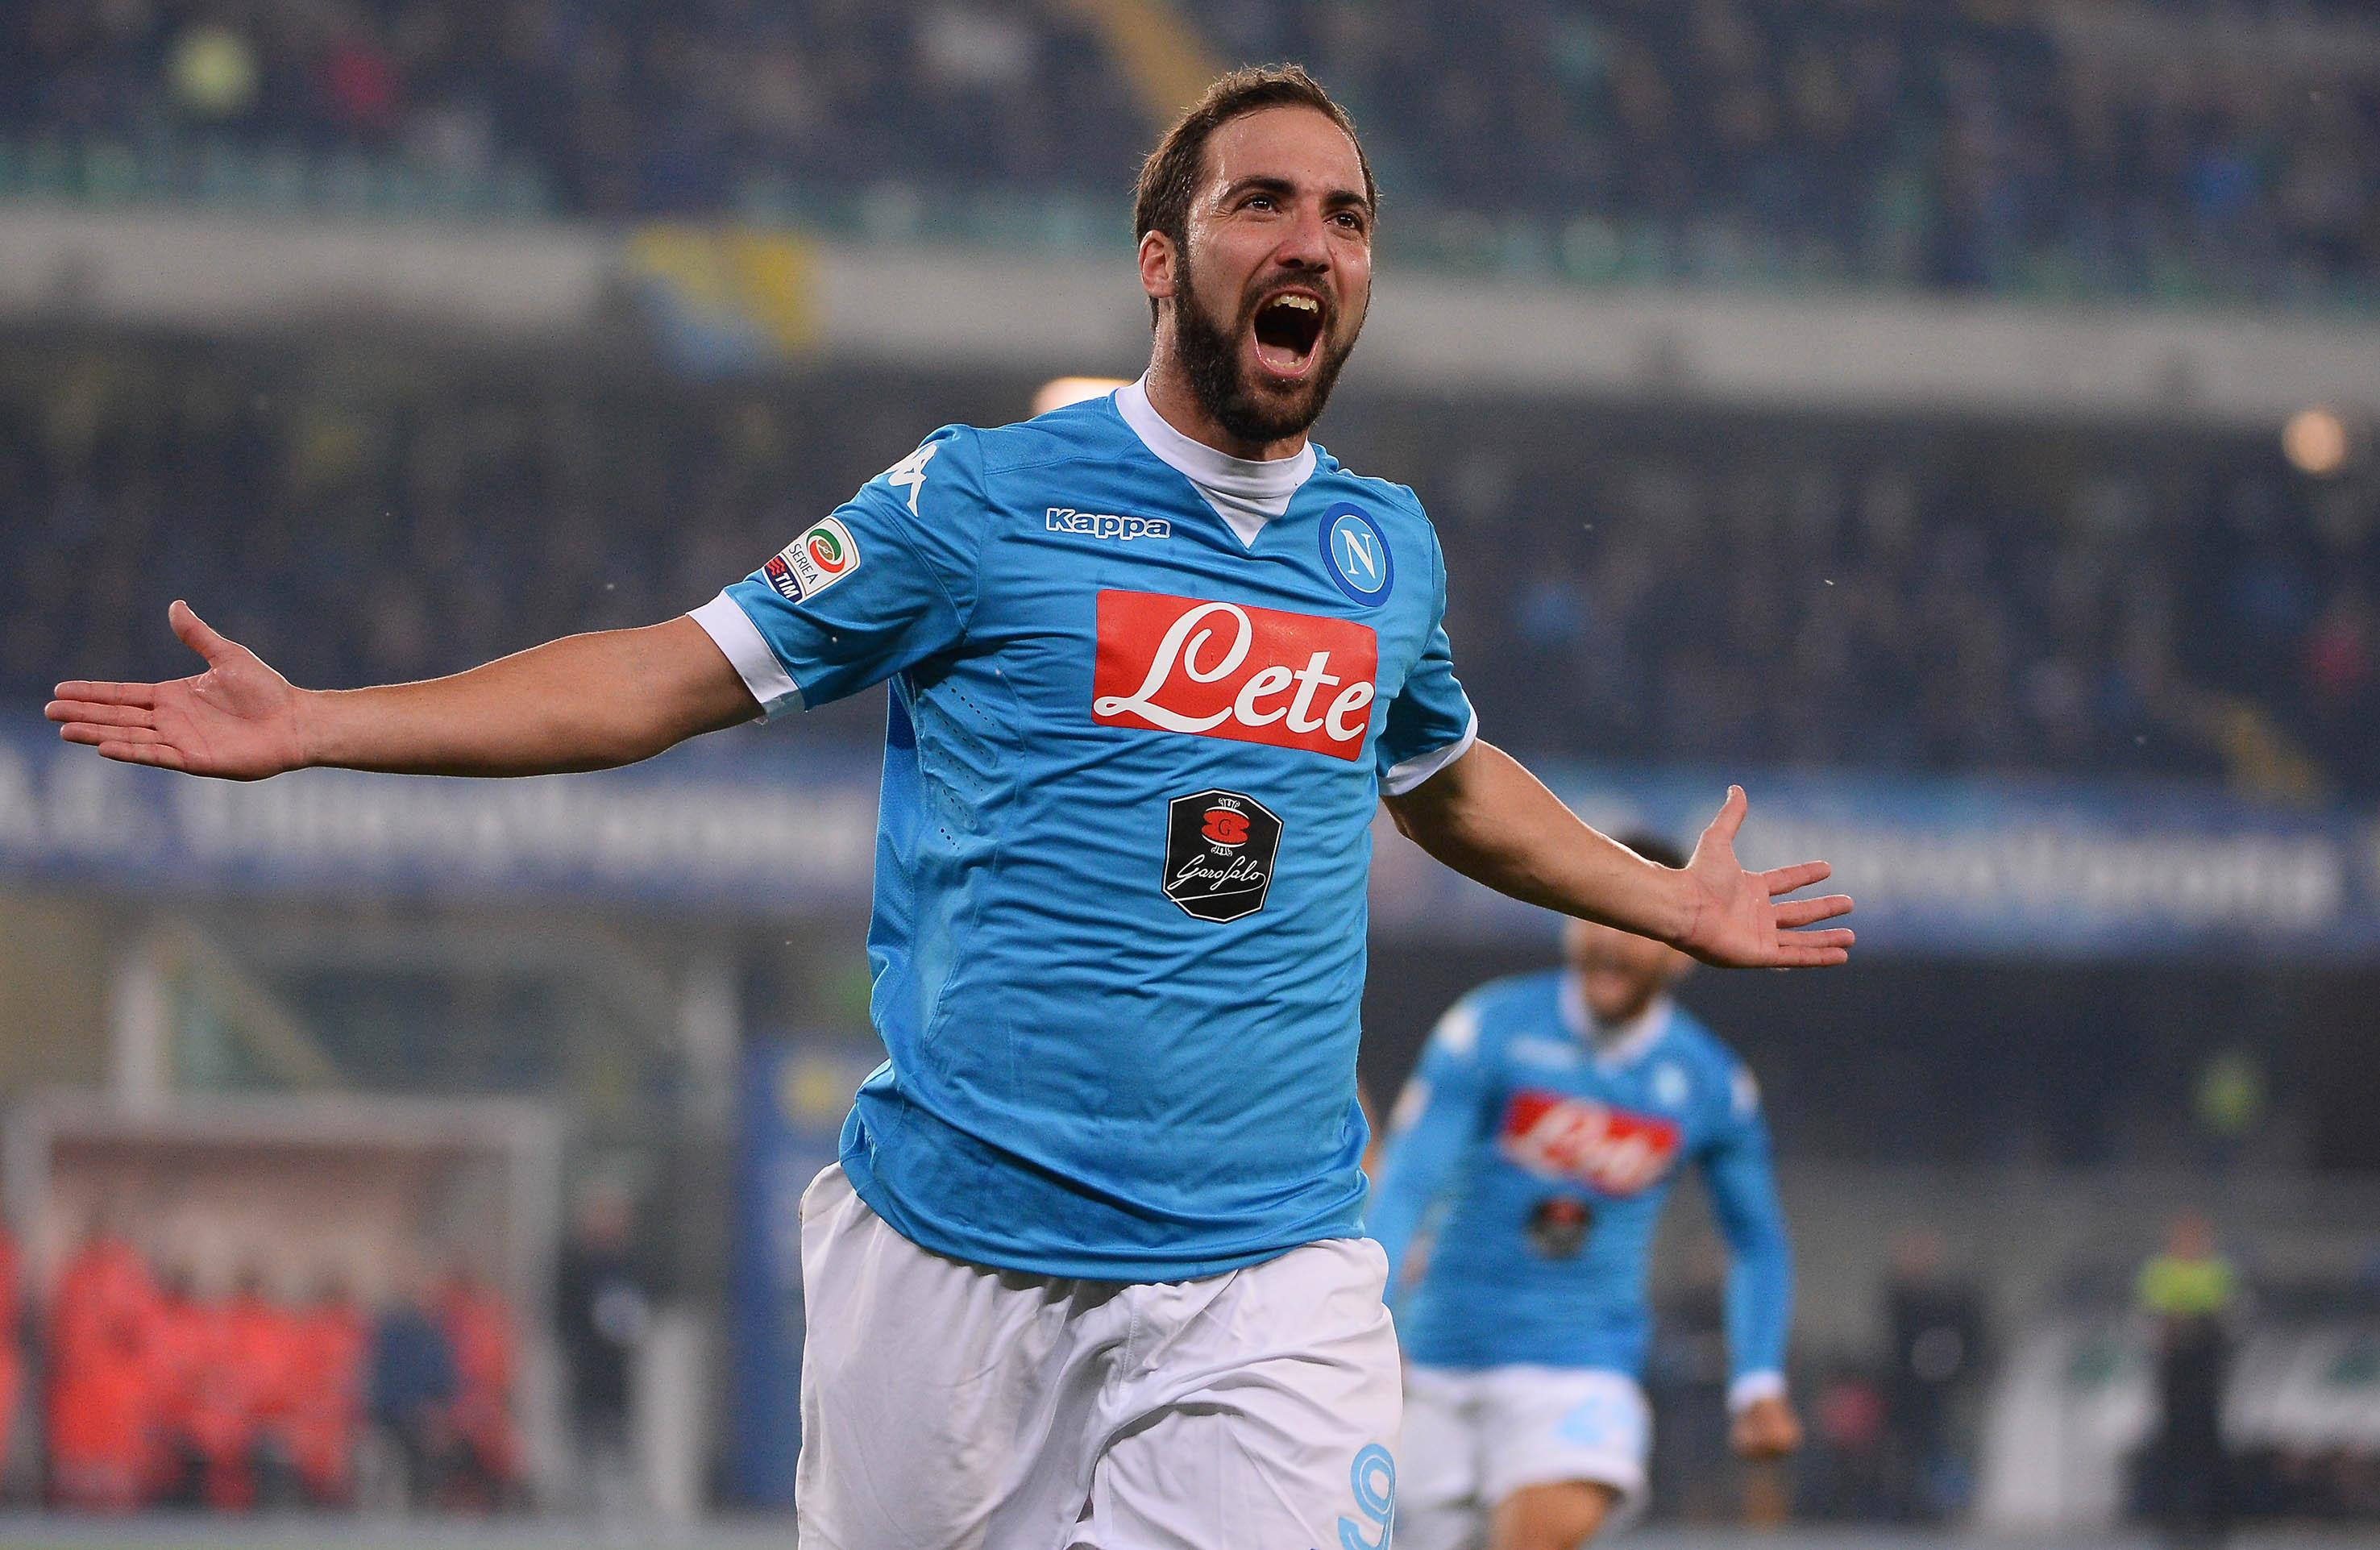 The Special Diet That Helped Higuan Bring His A Game